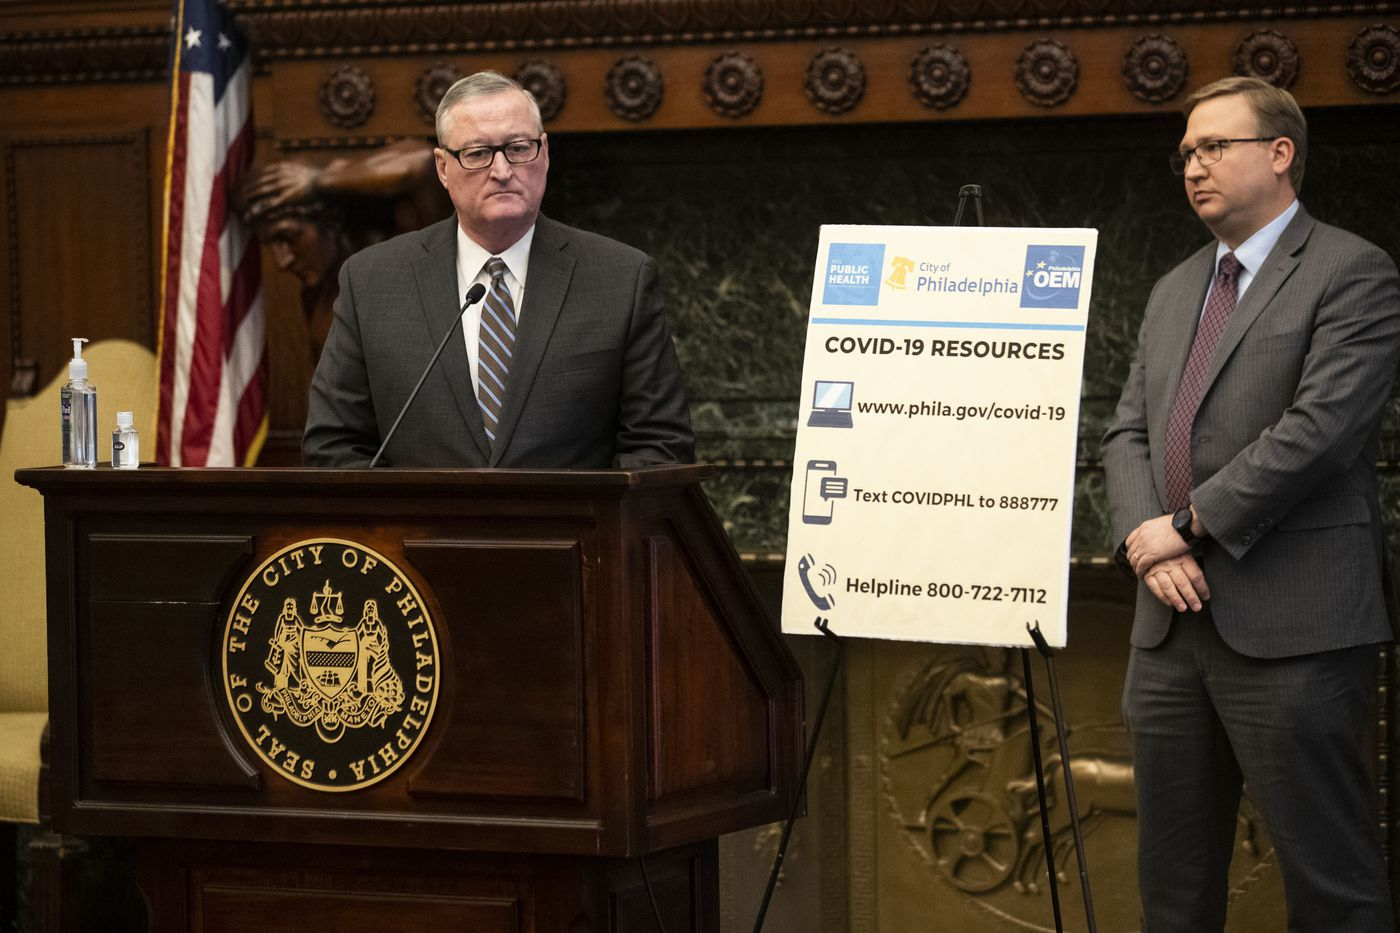 Mayor of Philadelphia Jim Kenney speaks during a press conference about the coronavirus at City Hall in Philadelphia, Pa. on Wednesday, March 18, 2020. Confirmed cases of the coronavirus are escalating across the country, including presumed positives in both Pennsylvania and New Jersey.